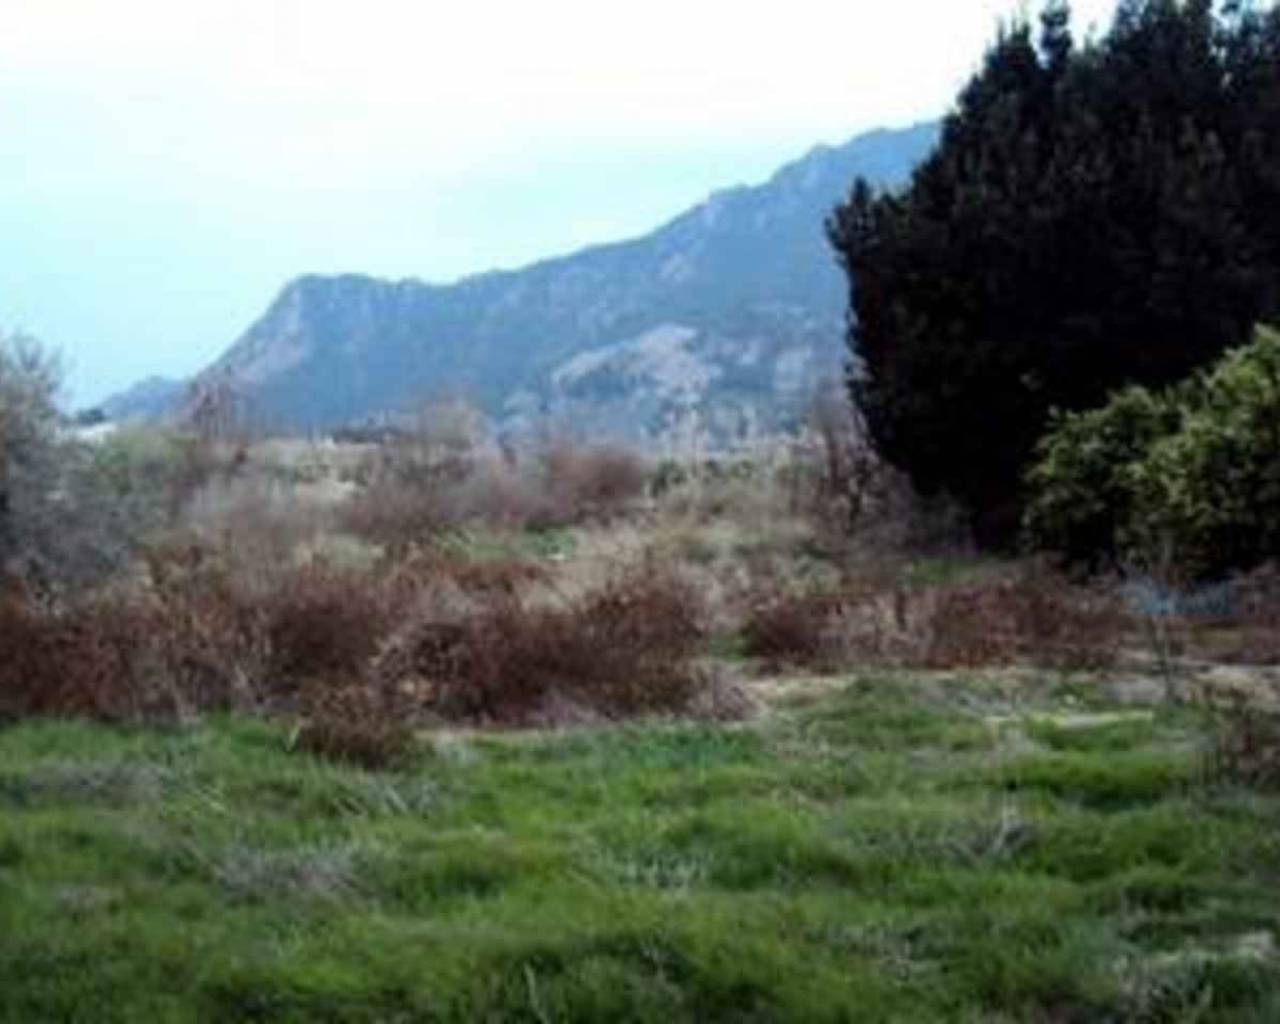 For Sale - Land / Building Plot - Blanca